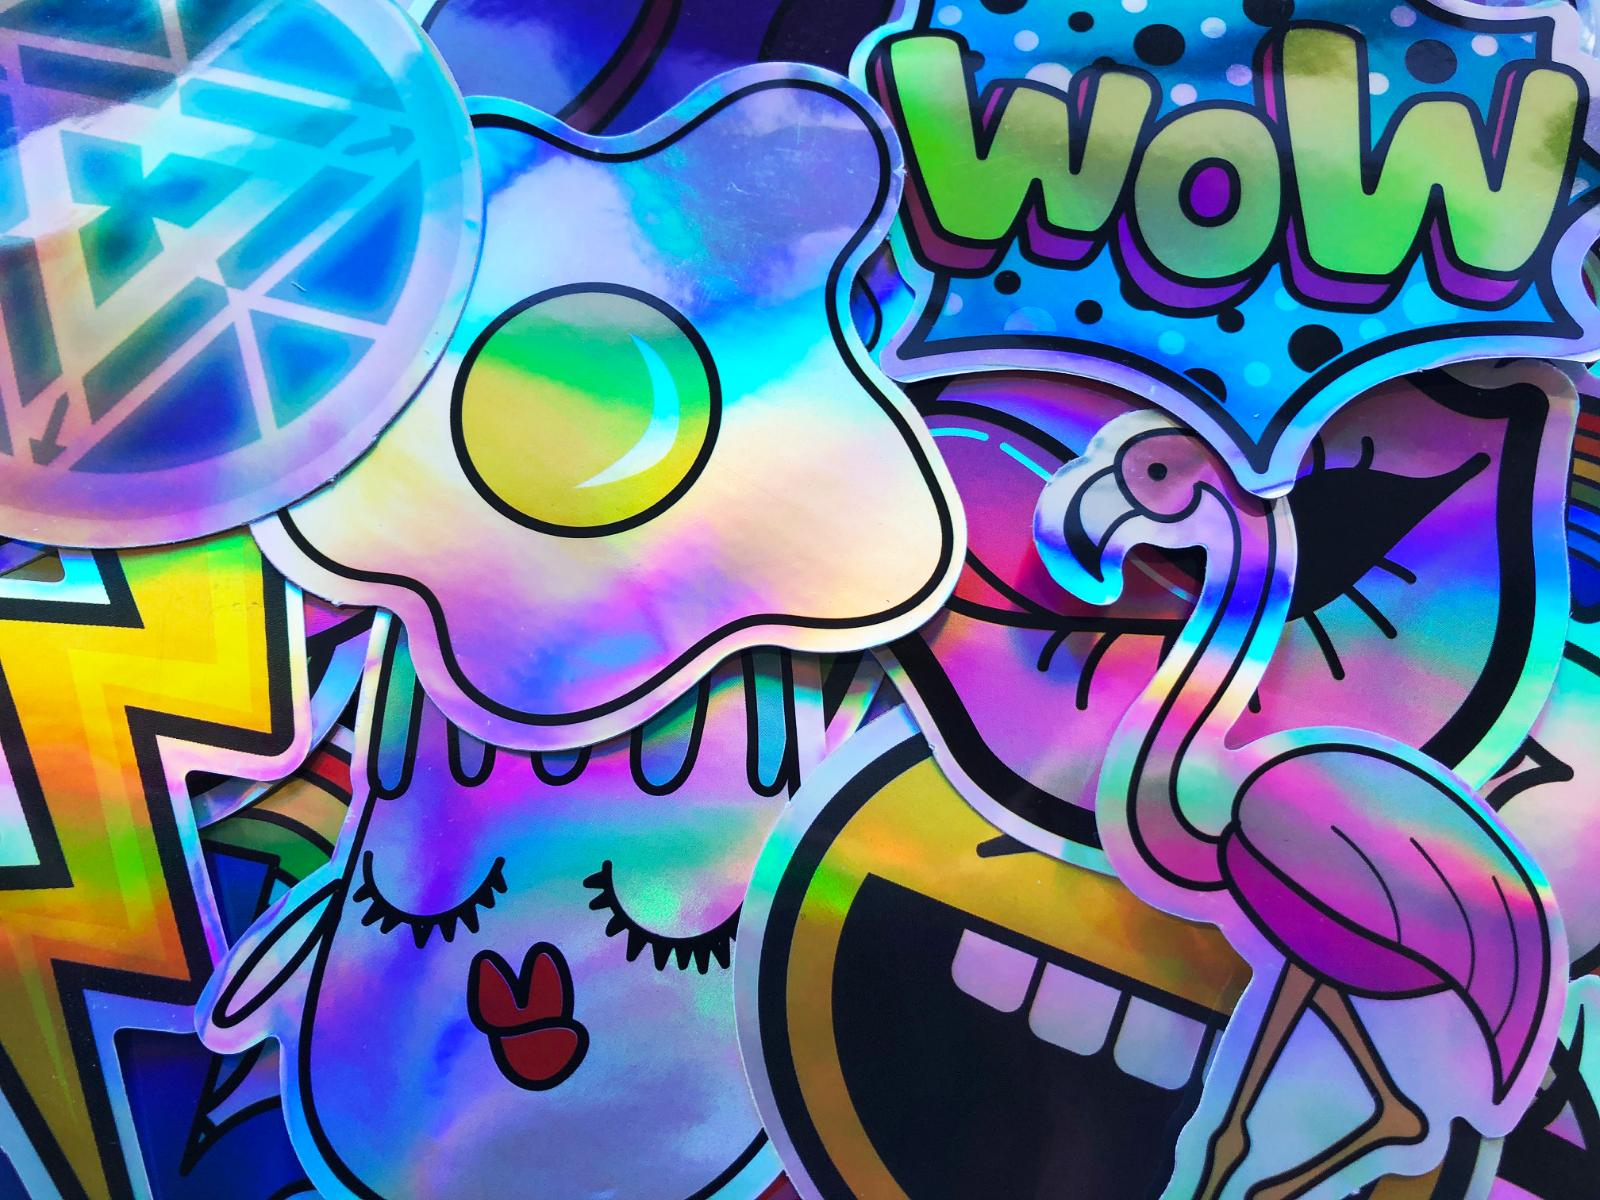 20 Holographic Reflective Graffiti Cool Stickers Decals #CS1